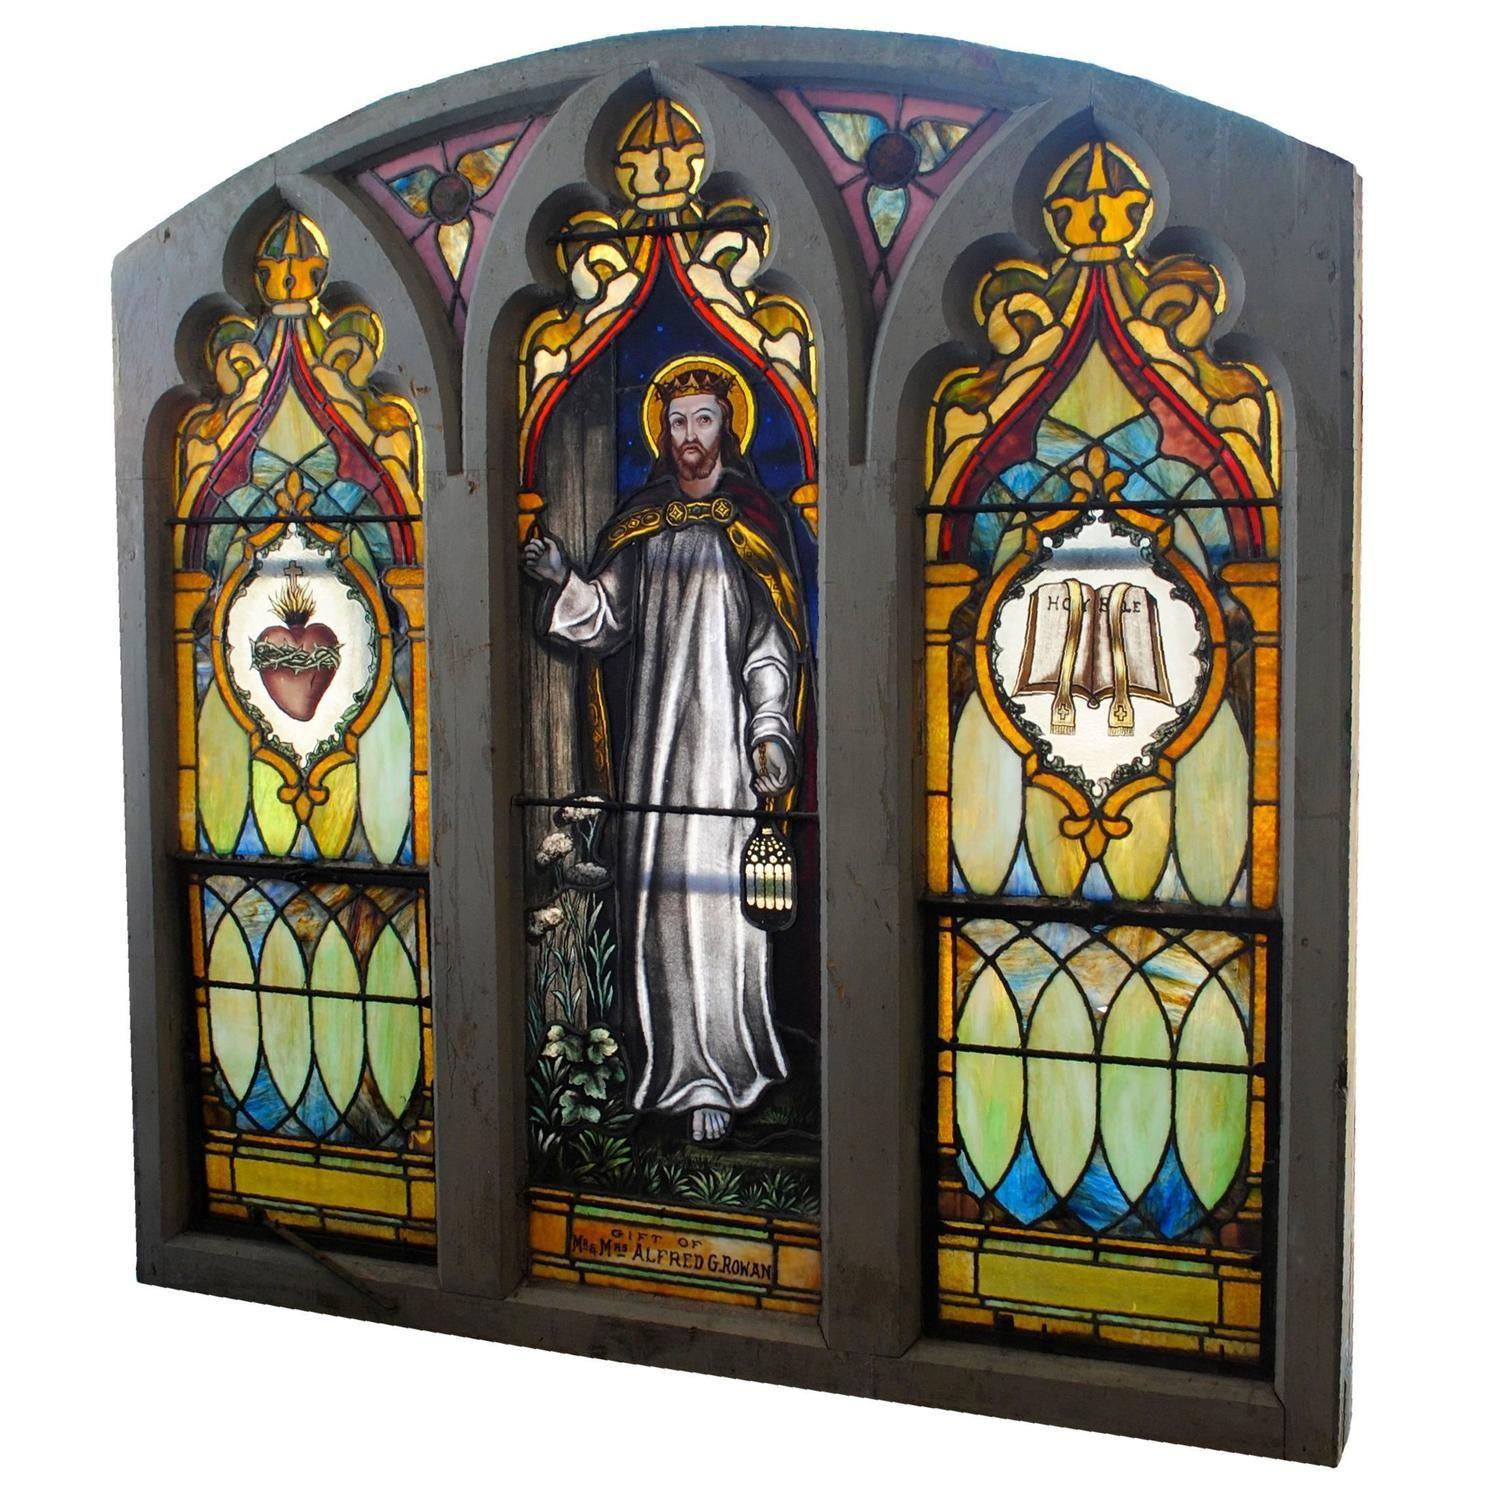 Antique Stained Glass Windows For Sale Church.Vintage Stained Glass Church Window Antiques Stained